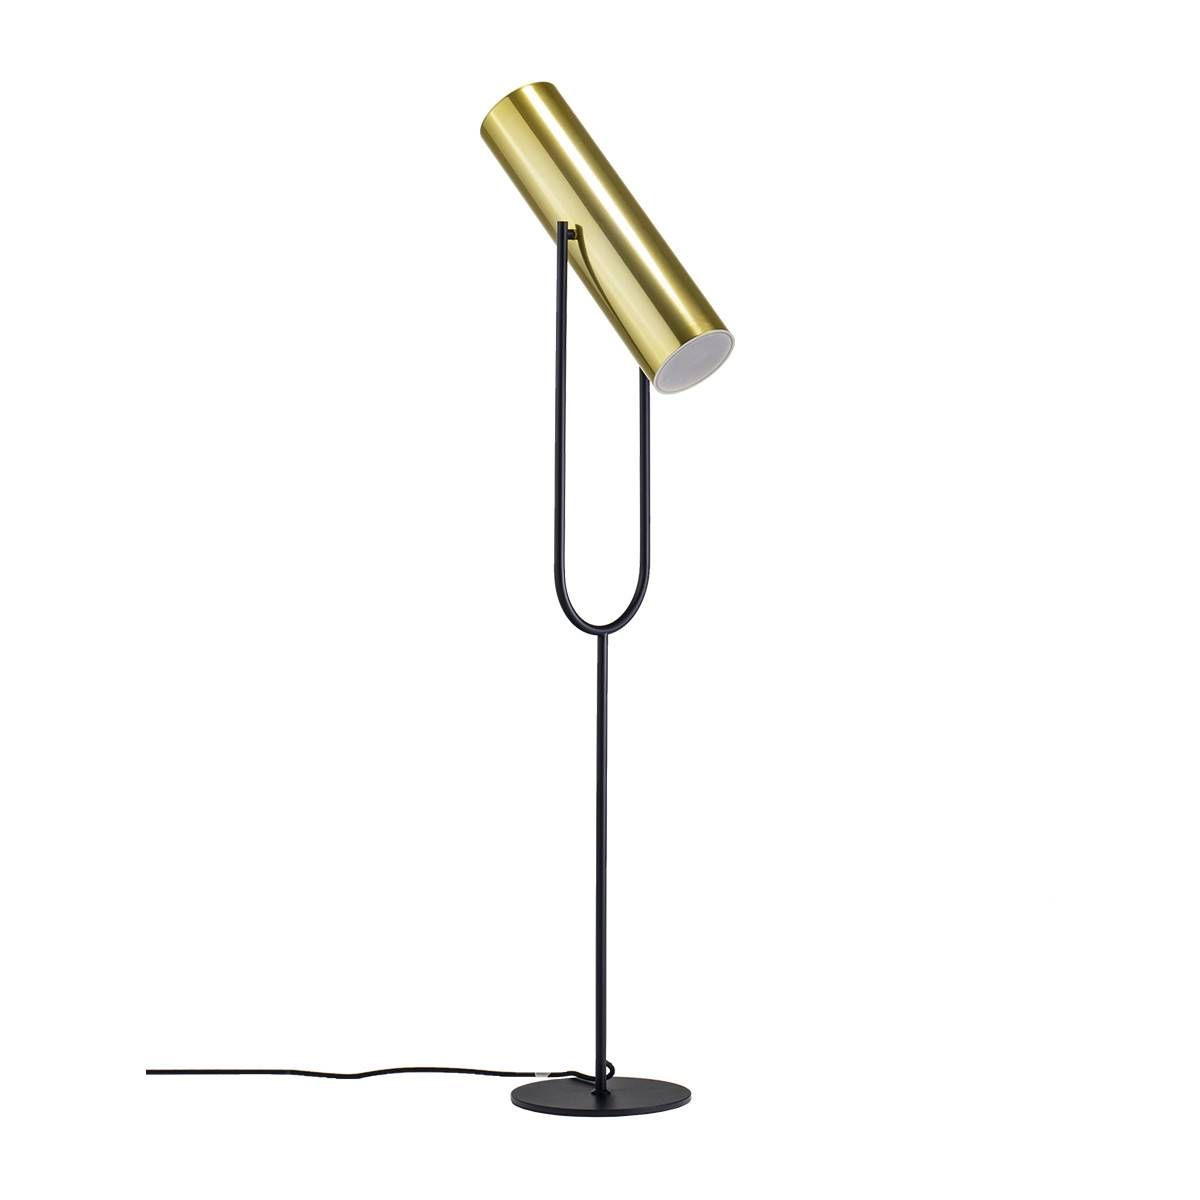 Buy Modern Floor Lamps Online Or Visit Our Showrooms To Get Inspired With The Latest Lighting From Mumoon Belgium Jeb Floor Lamp Brass